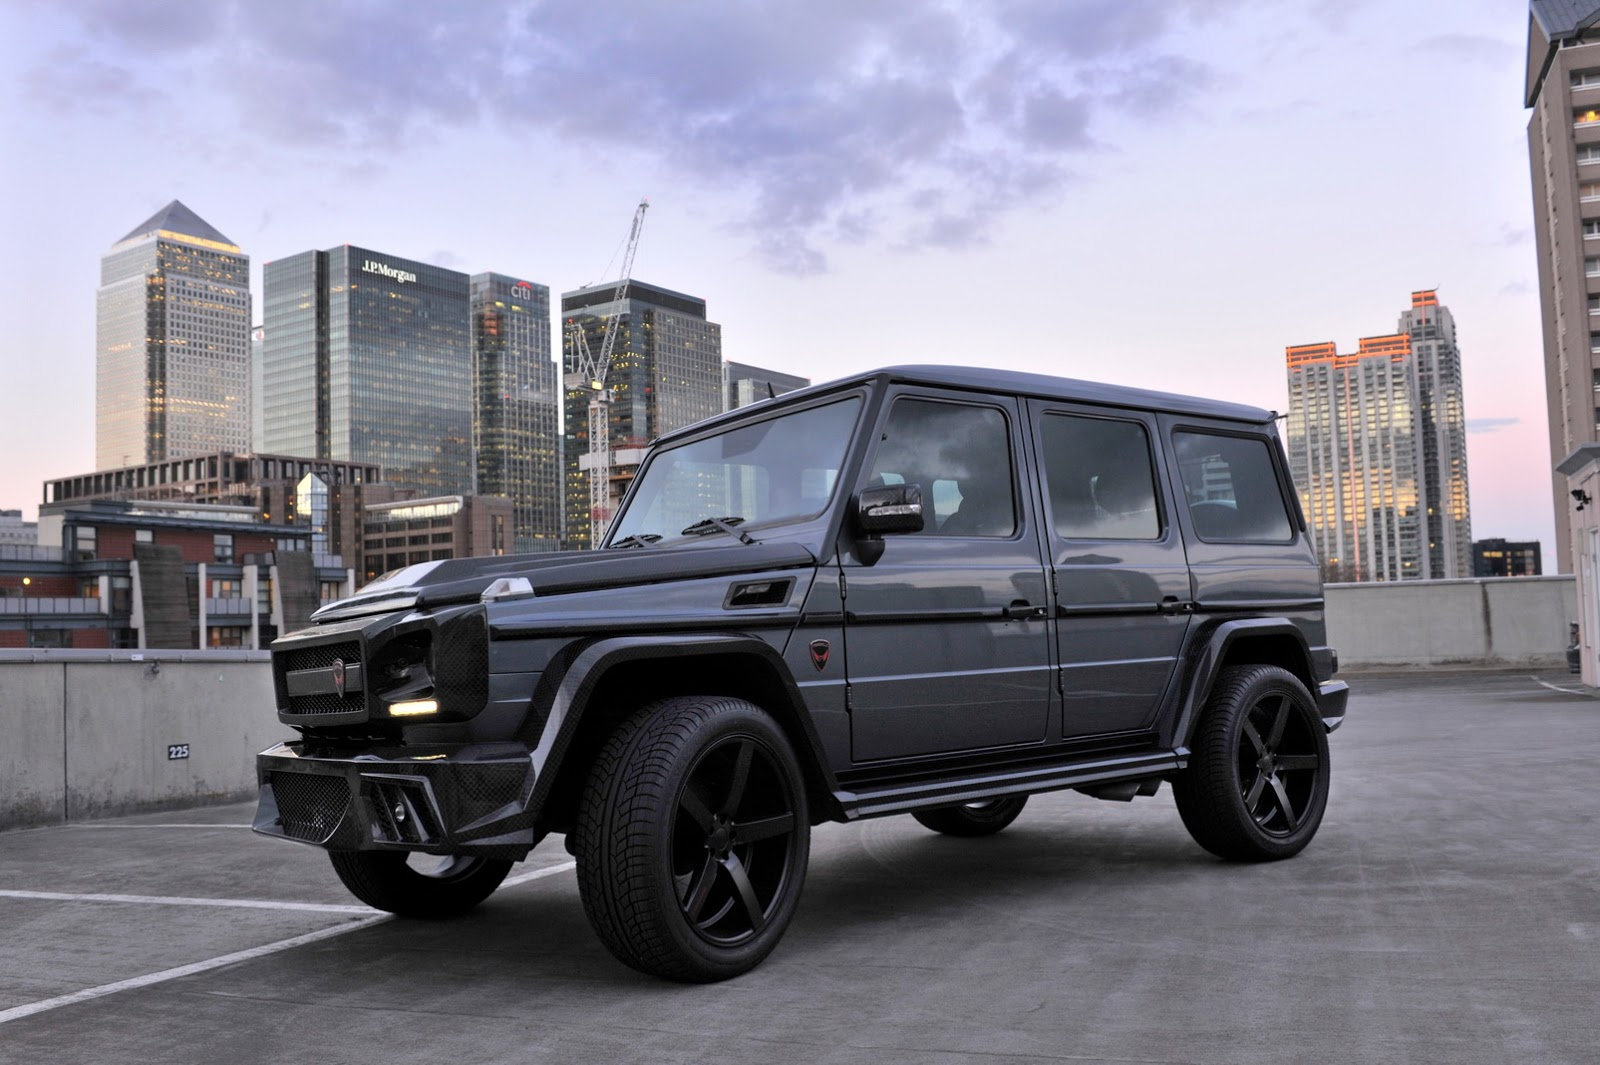 mercedes g63 amg by prindiville gets lizard like looks. Black Bedroom Furniture Sets. Home Design Ideas